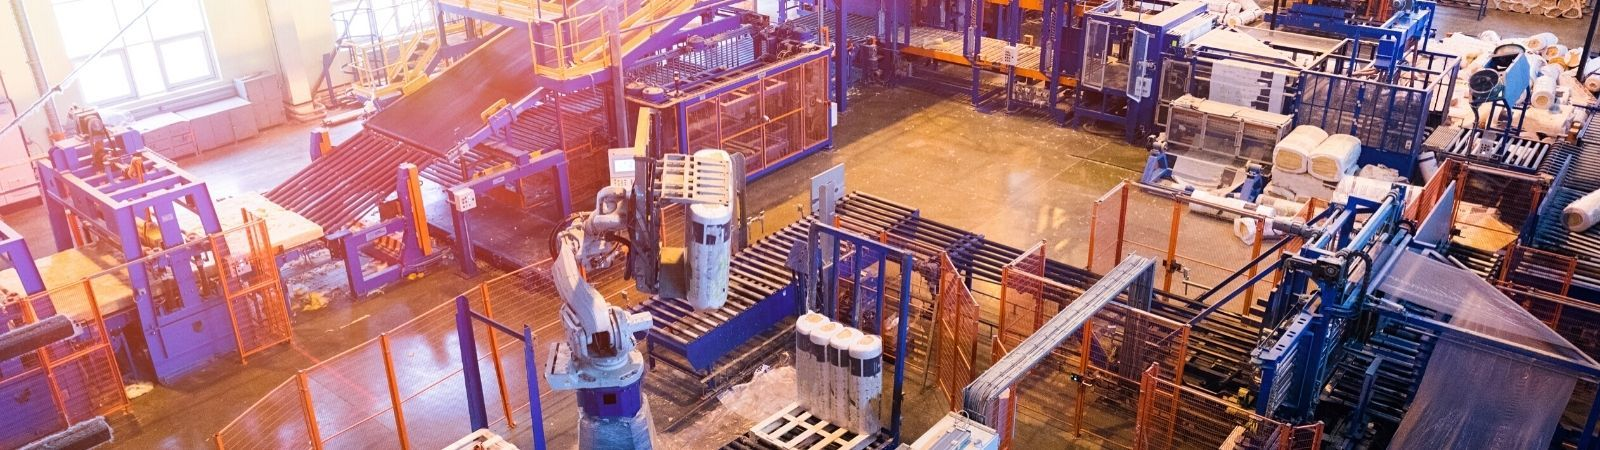 Factory floor image from above with manufacturing machines and blue and red racks.